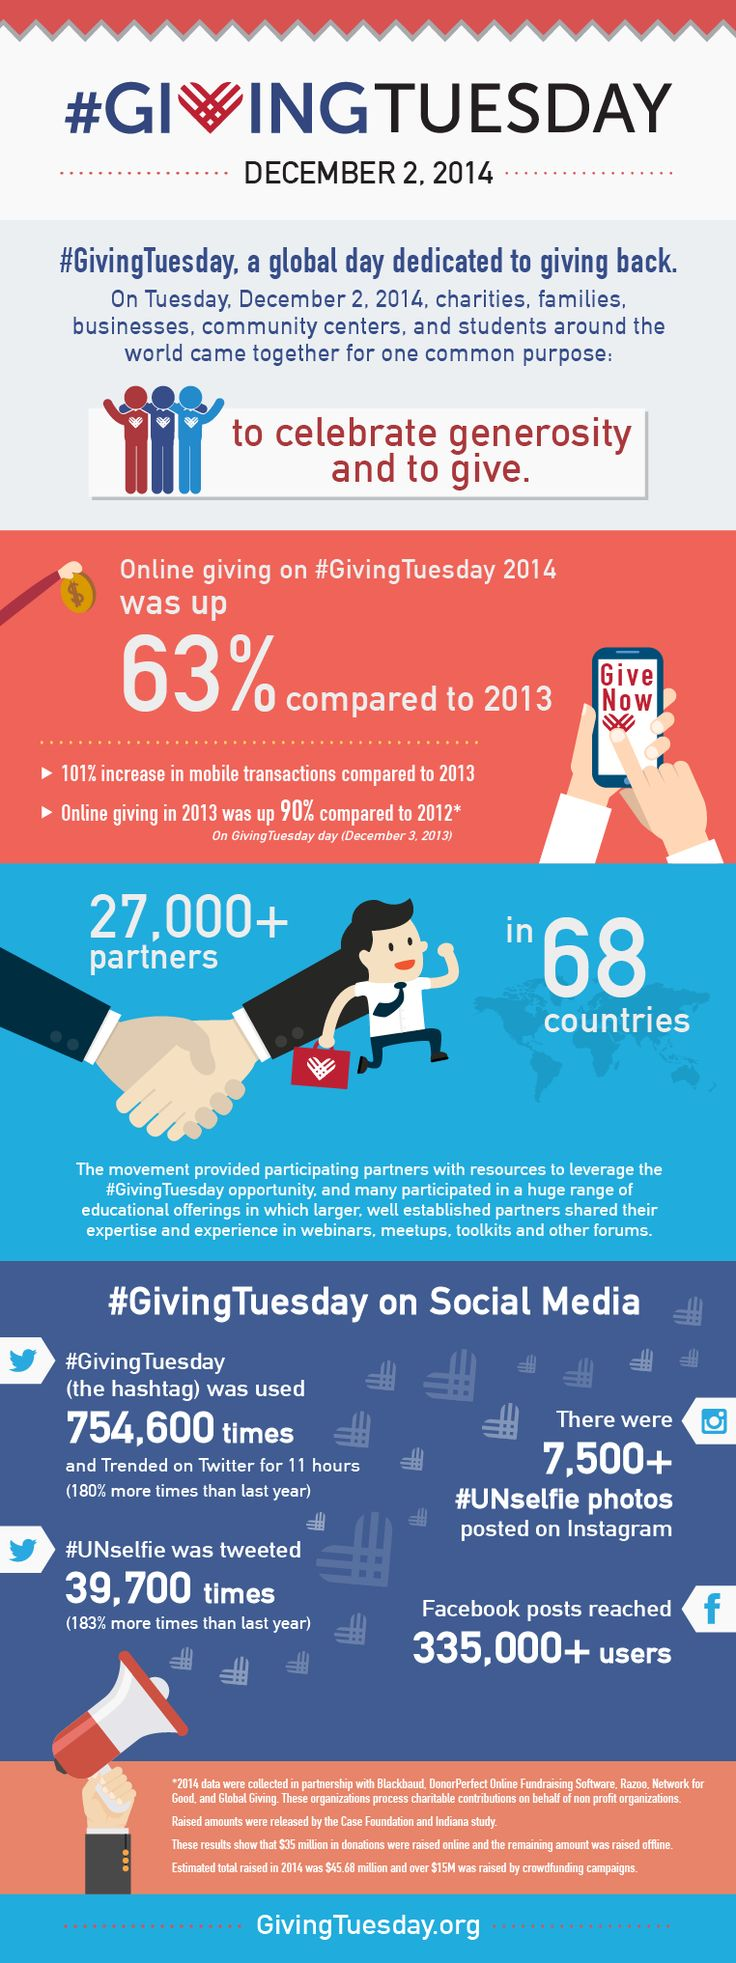 #GivingTuesday Results Infographic With over 27,000 partners in 68+ countries, #GivingTuesday had a big impact around the globe.  Download this new infographic to share these top results from #GivingTuesday 2014.